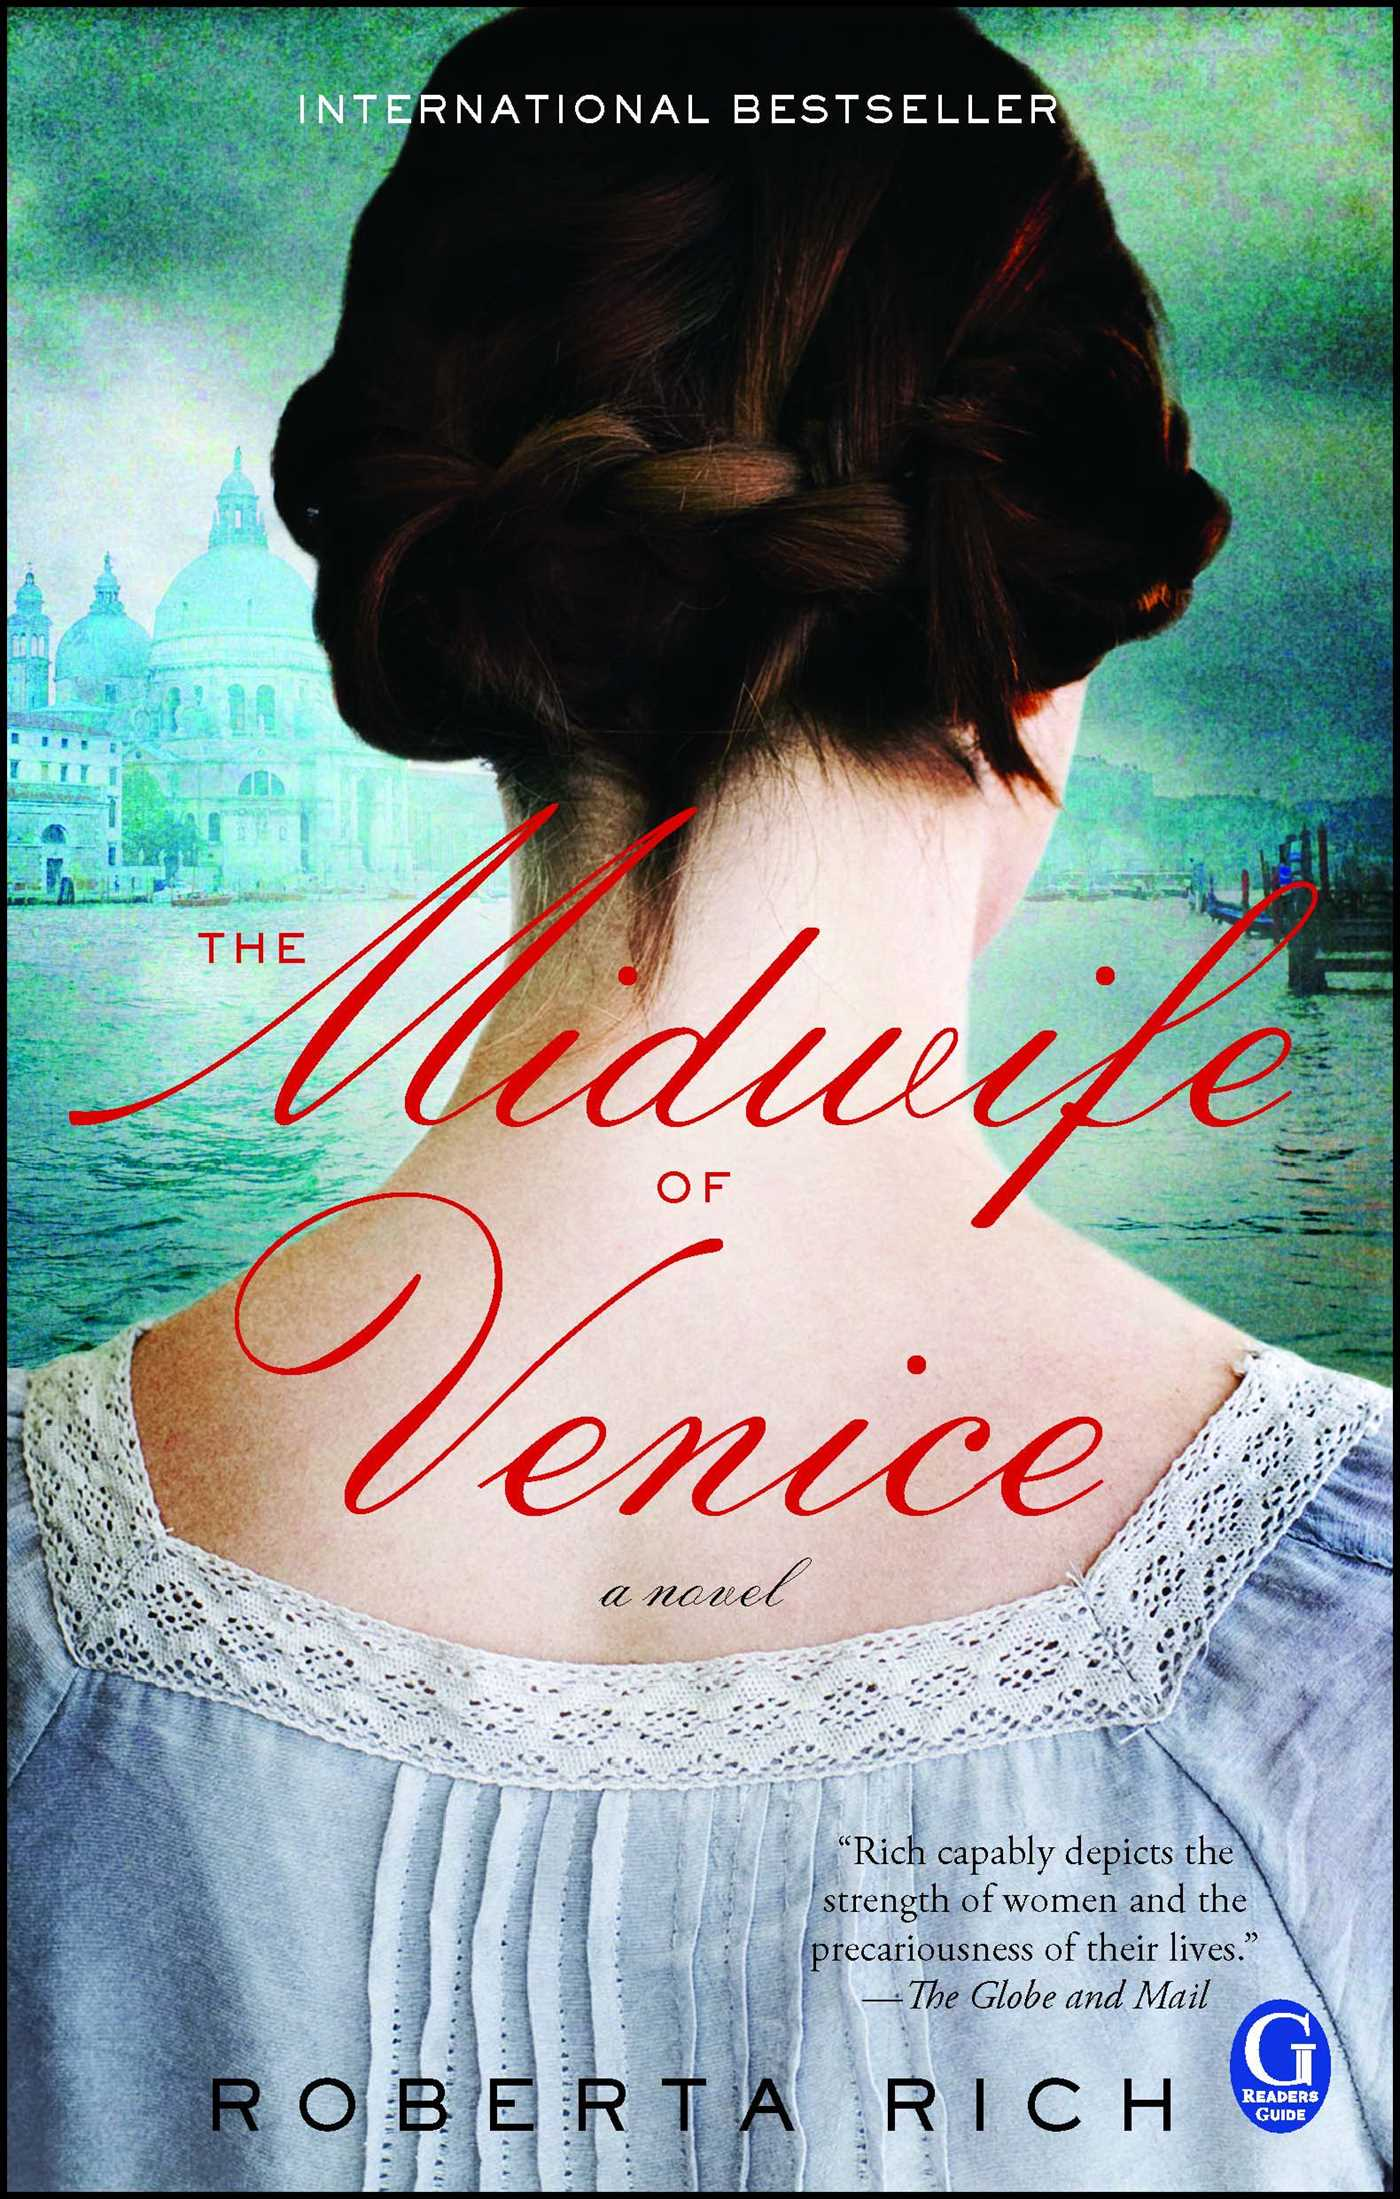 The-midwife-of-venice-9781451657470_hr